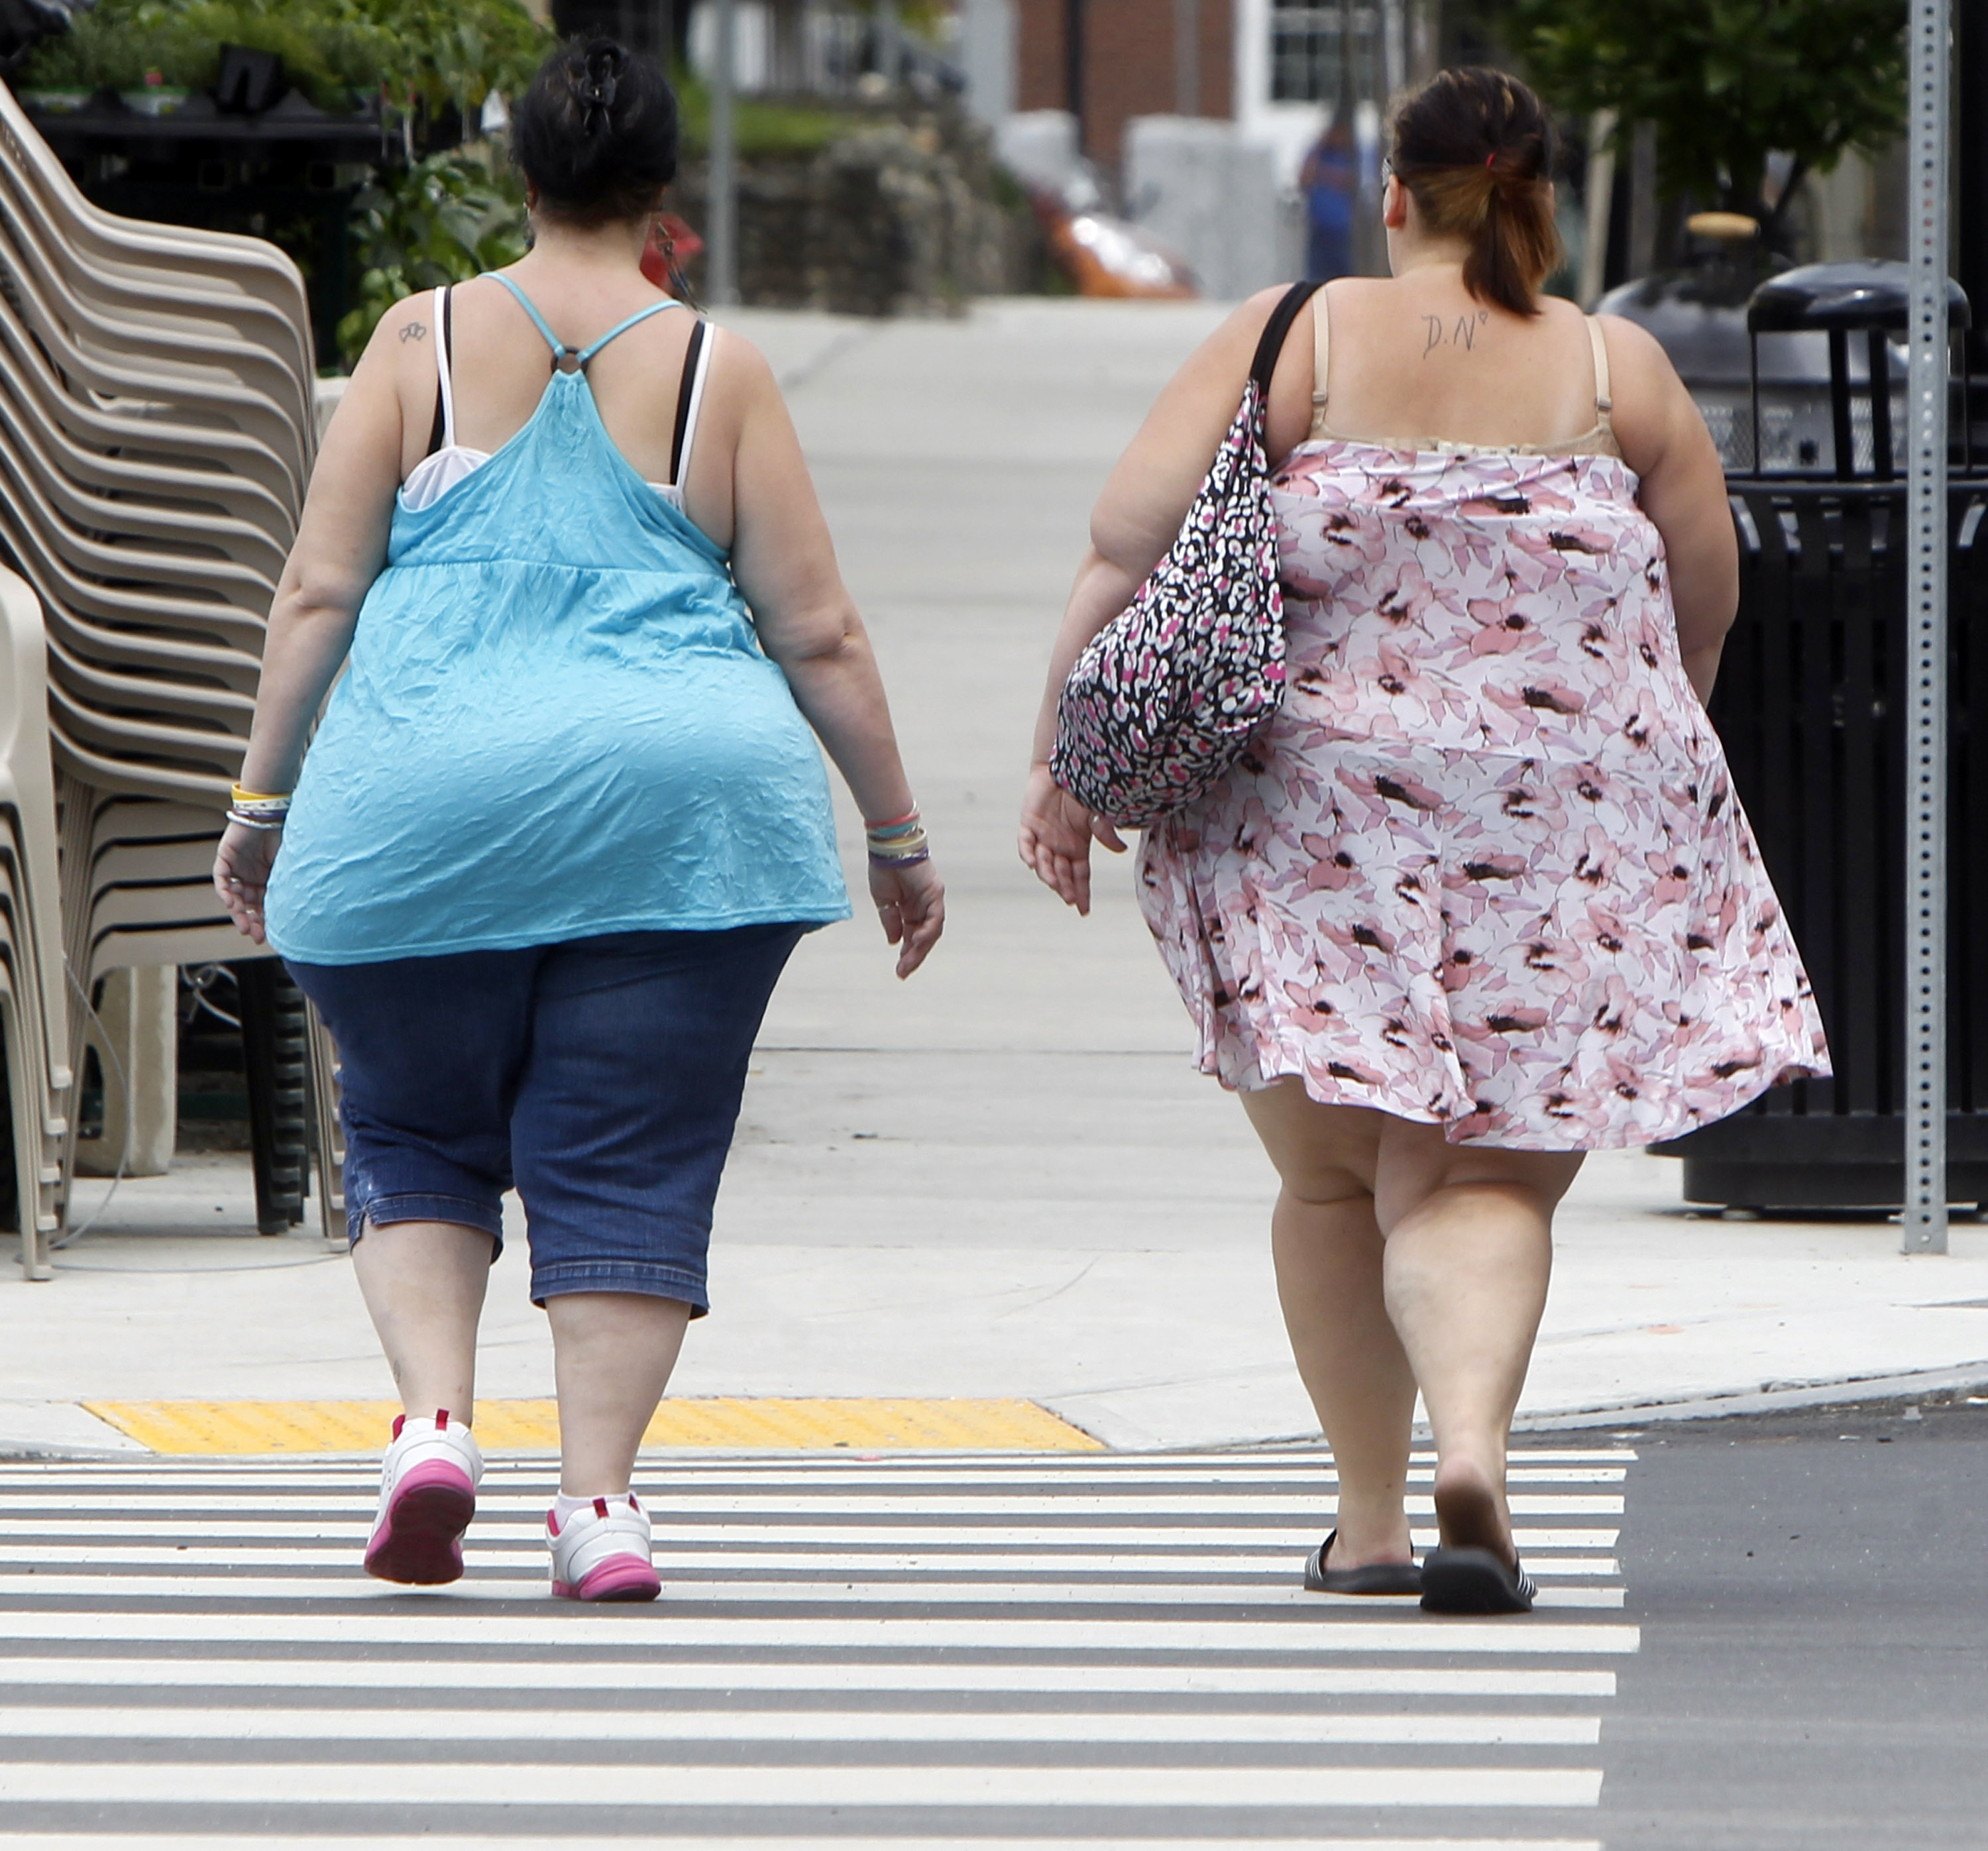 Psychological impacts of obesity as 'disease'